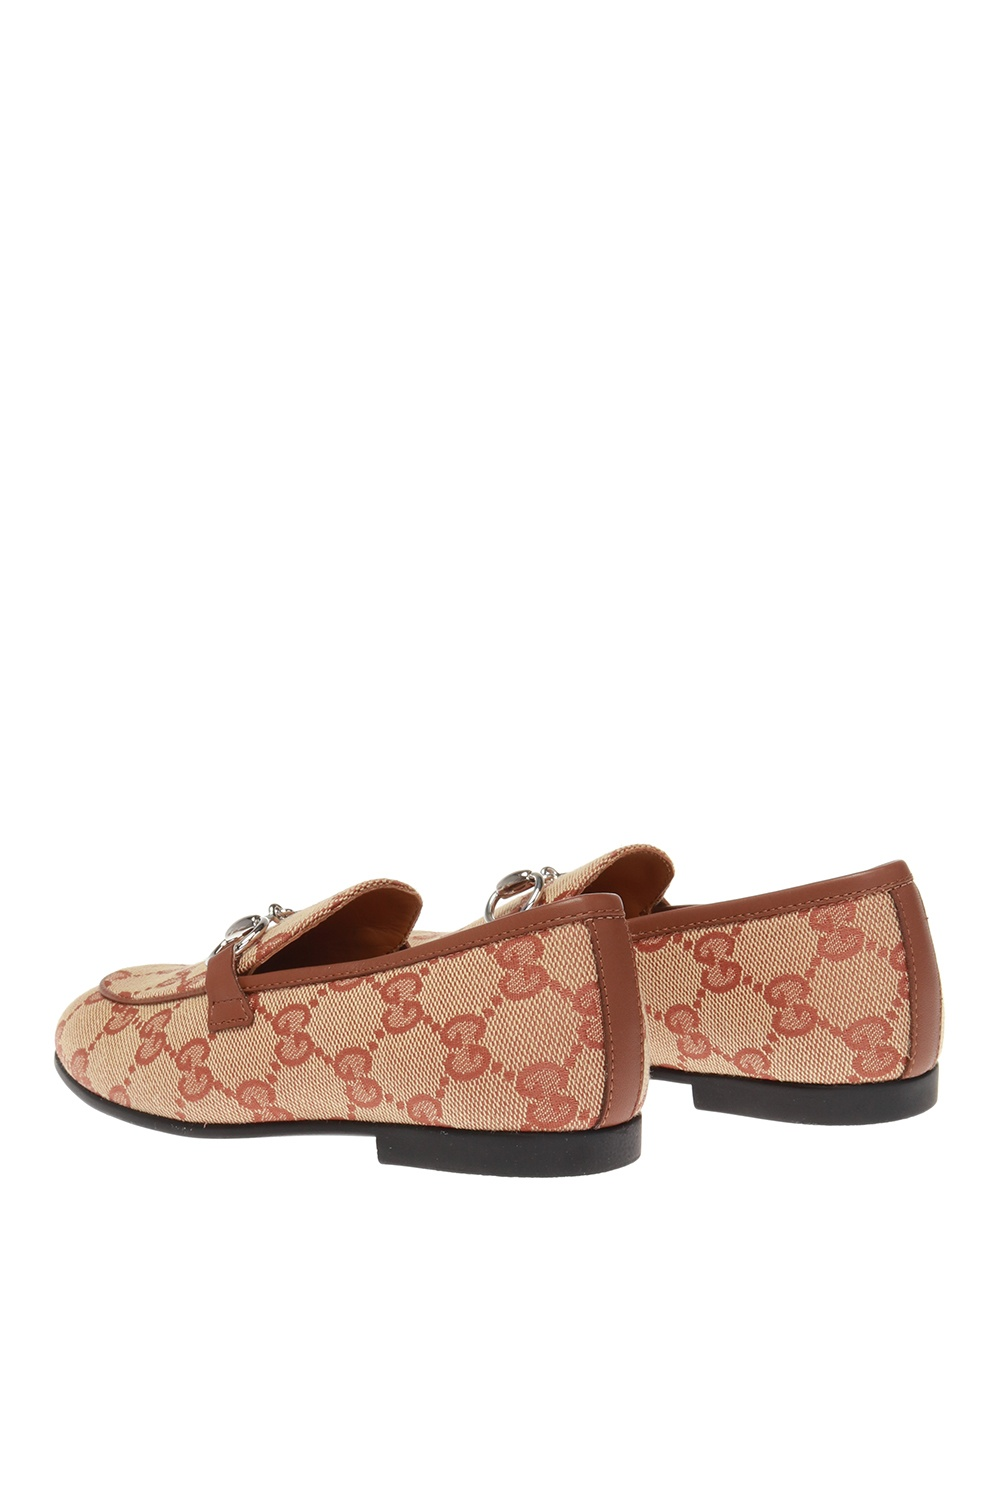 Gucci Kids Shoes with logo